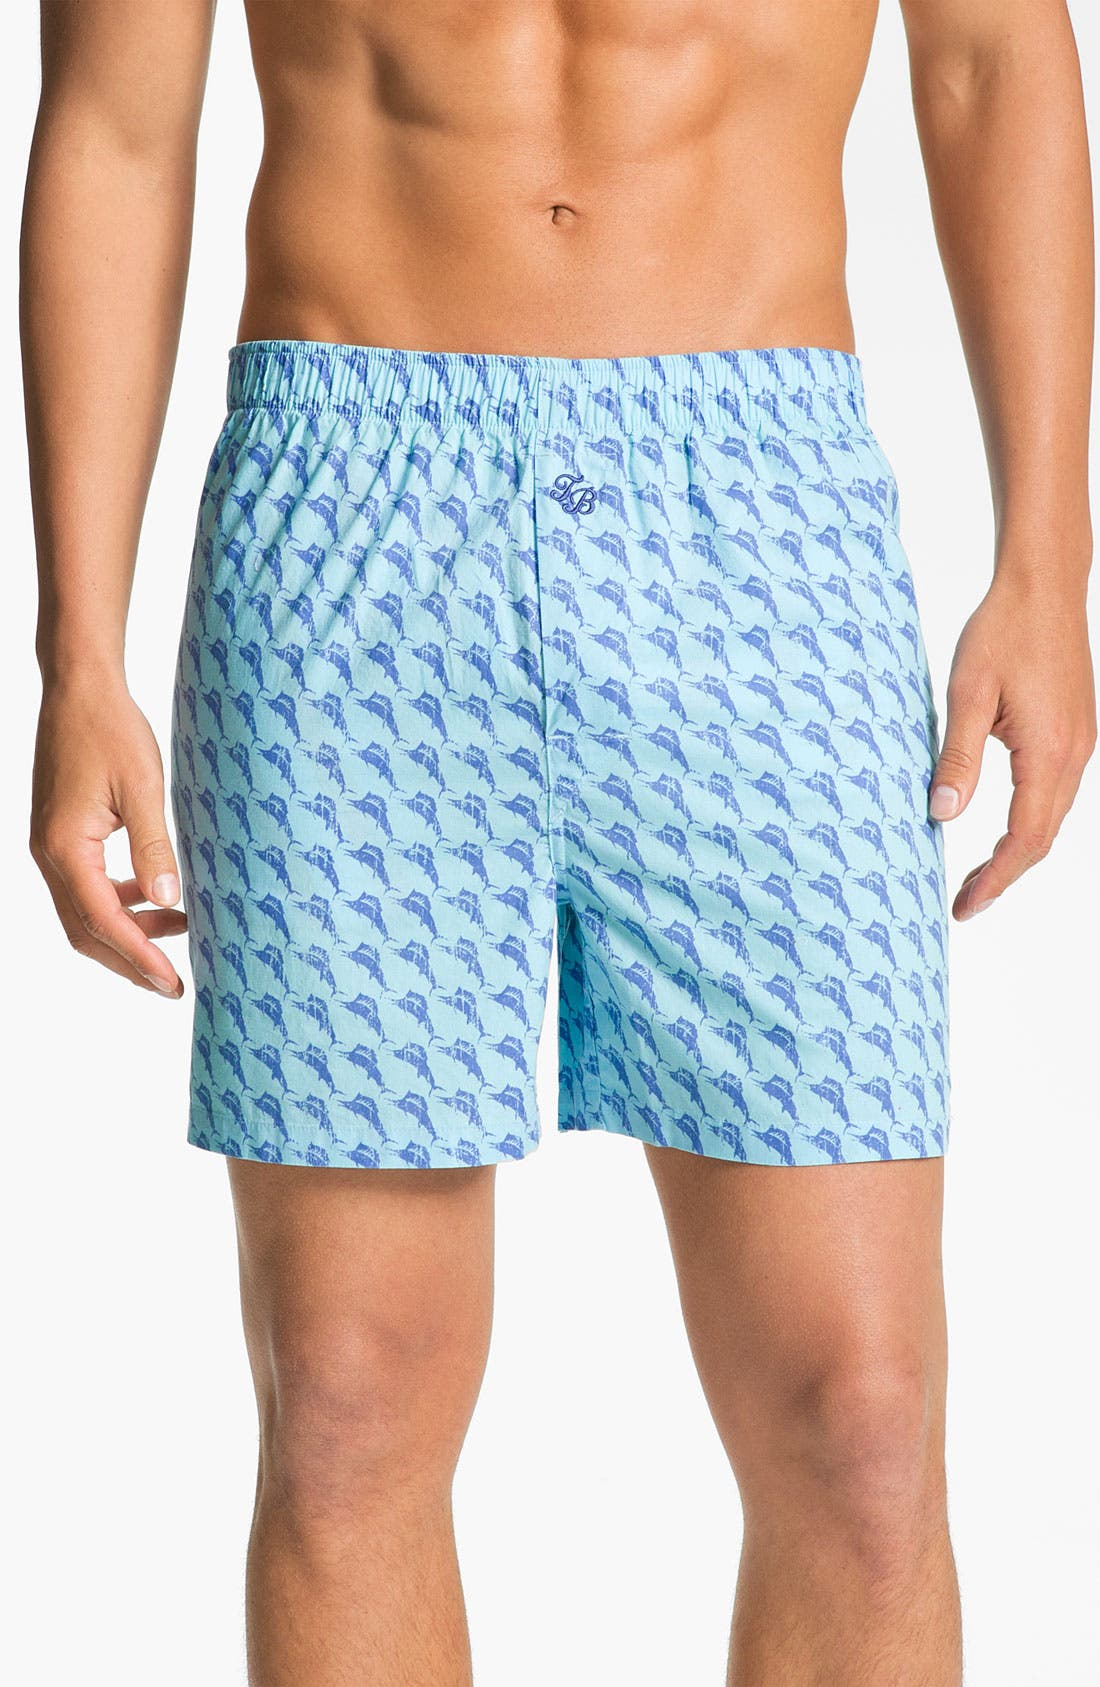 Alternate Image 1 Selected - Tommy Bahama 'Marlin Madness' Boxers